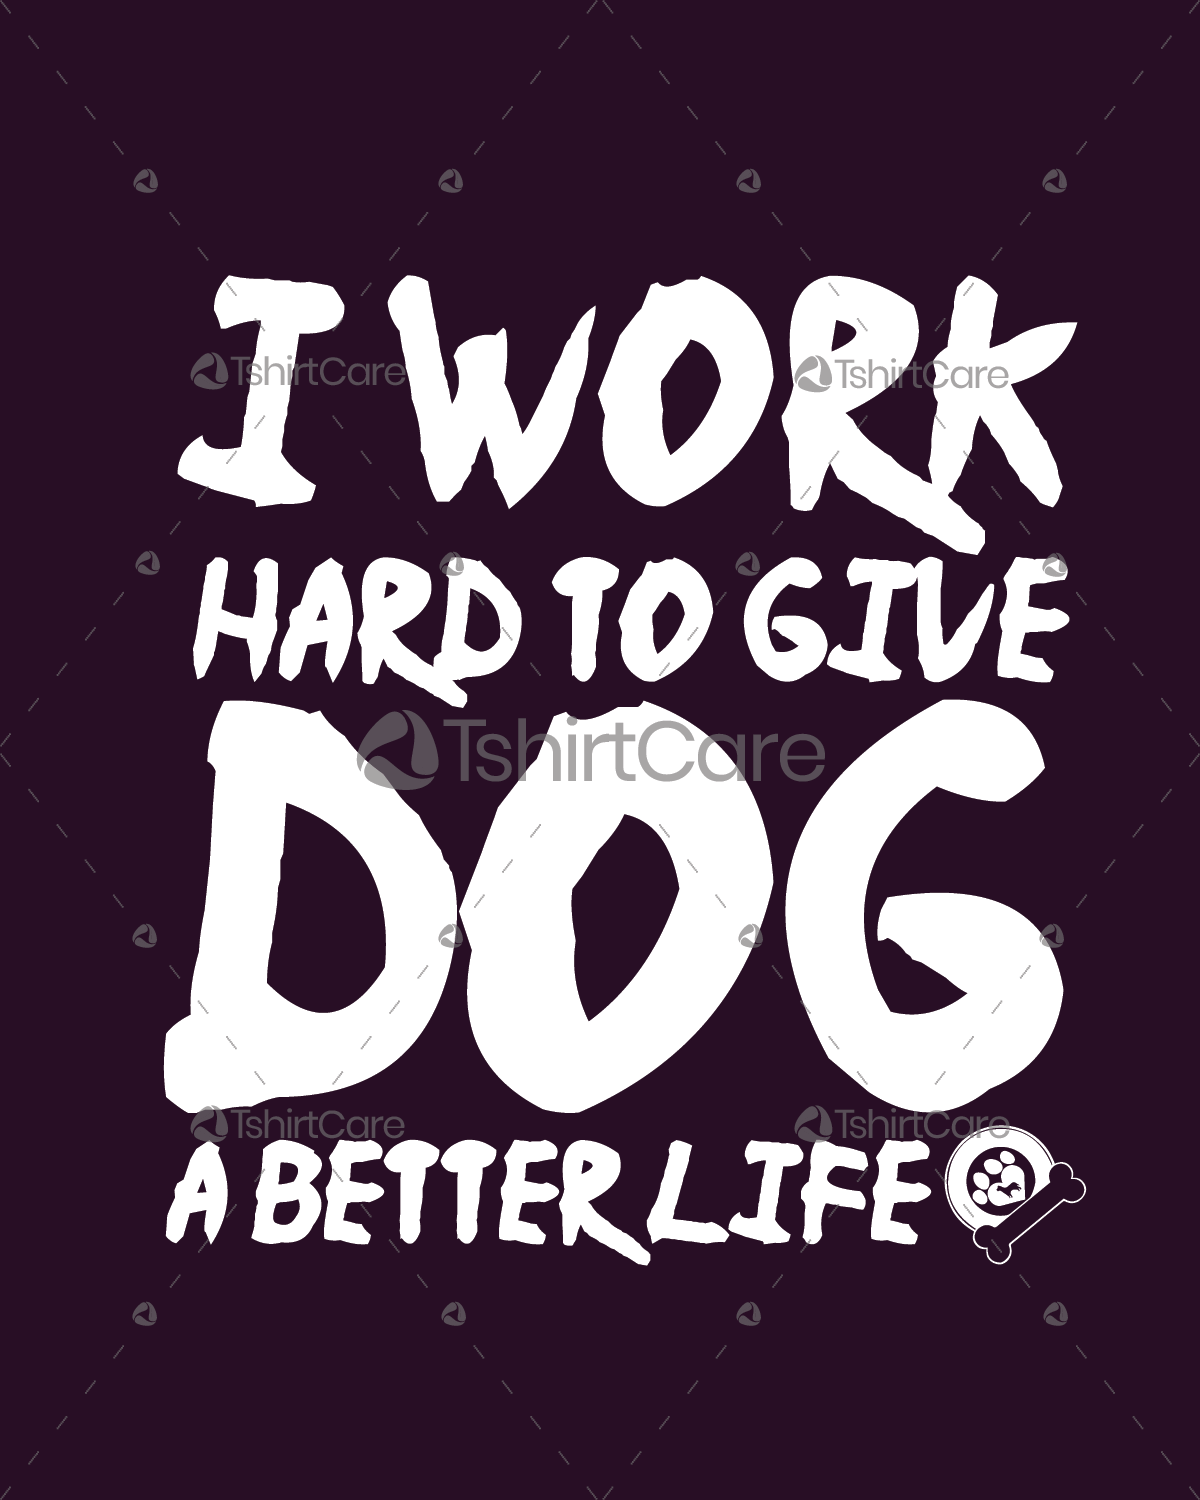 7b1f44101 I work hard to give my dog a better life T shirt Design for Only Dog Lover  Tee Shirts - TshirtCare